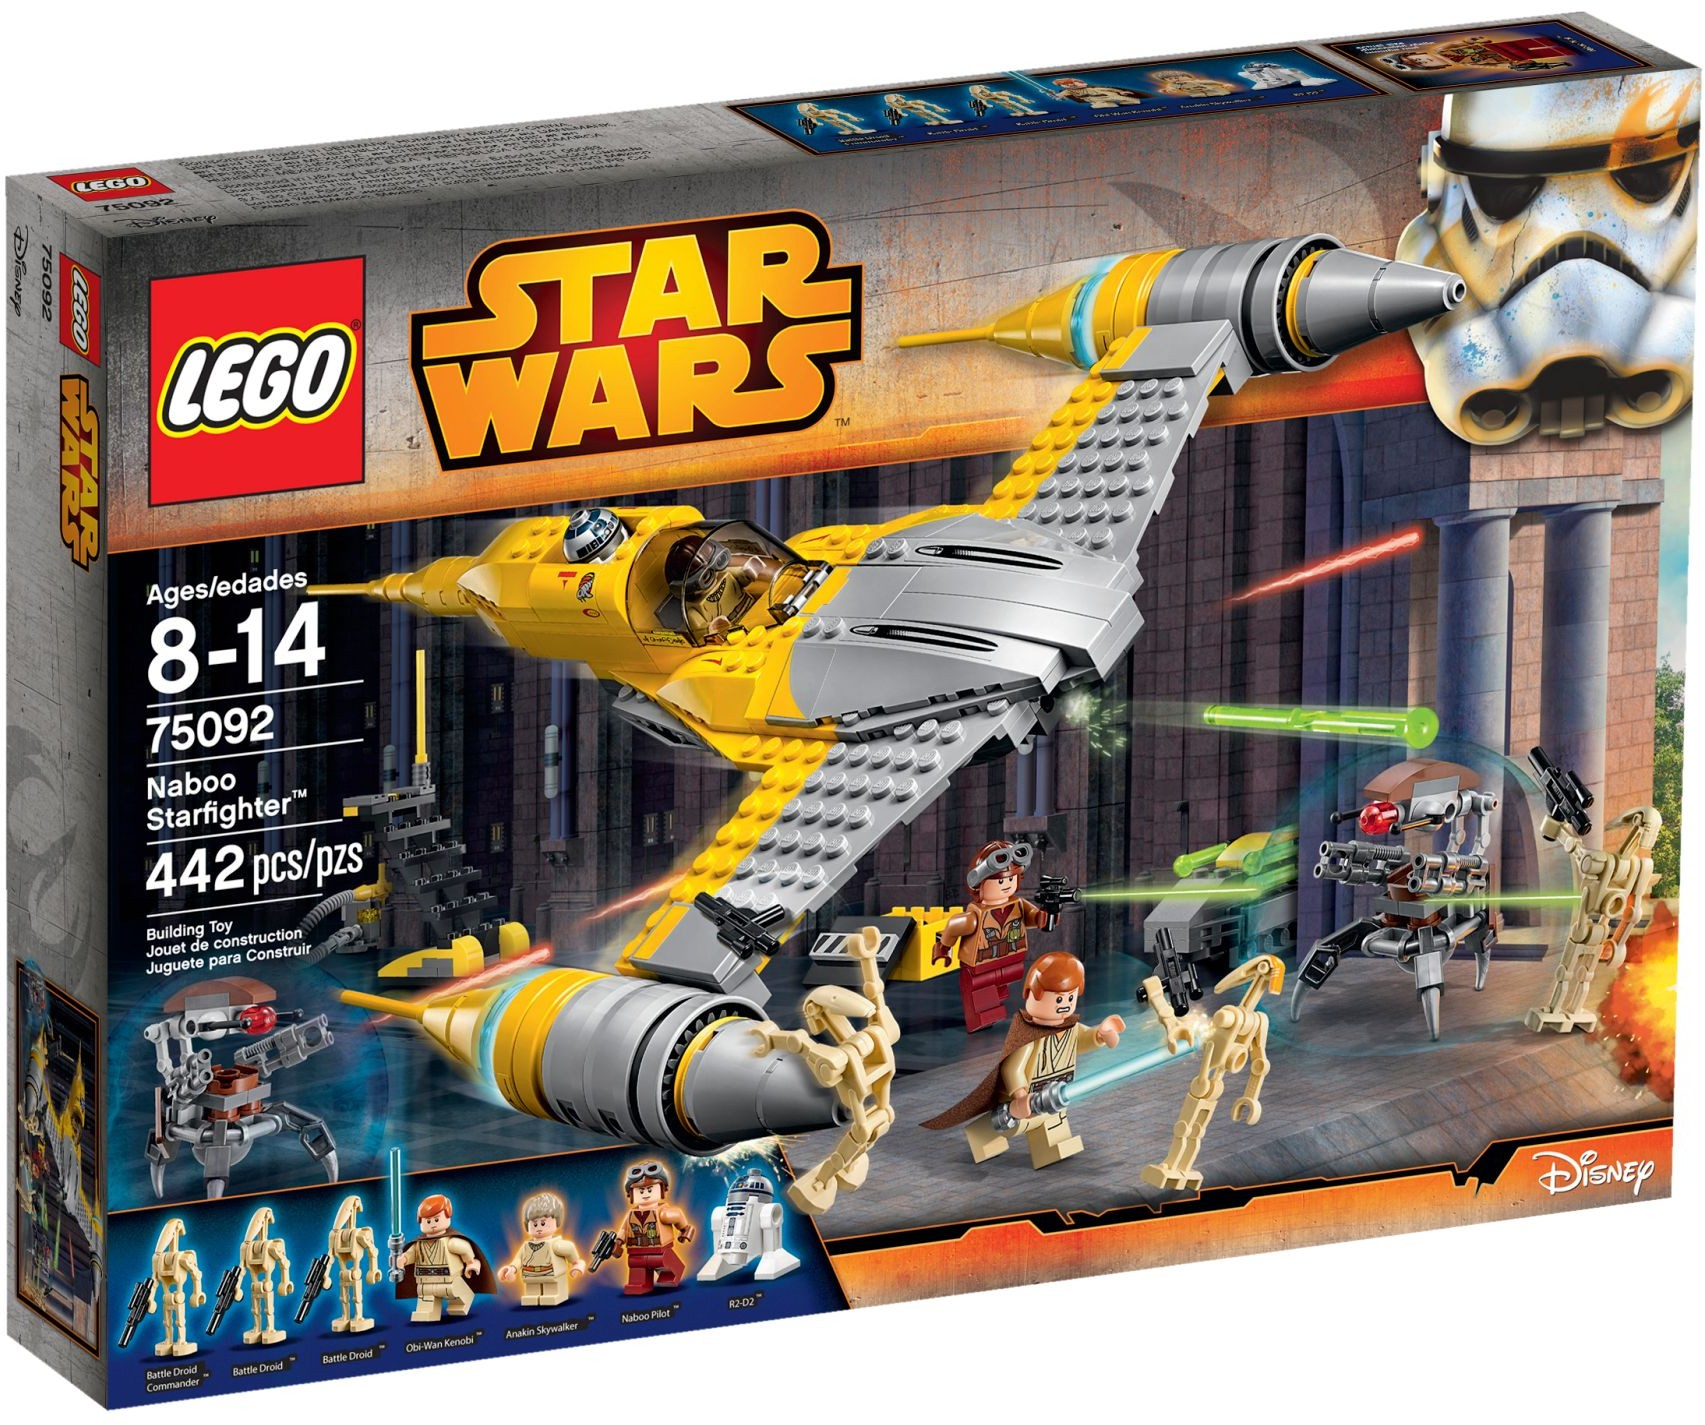 LEGO 75092 - Star Wars - Naboo Starfighter